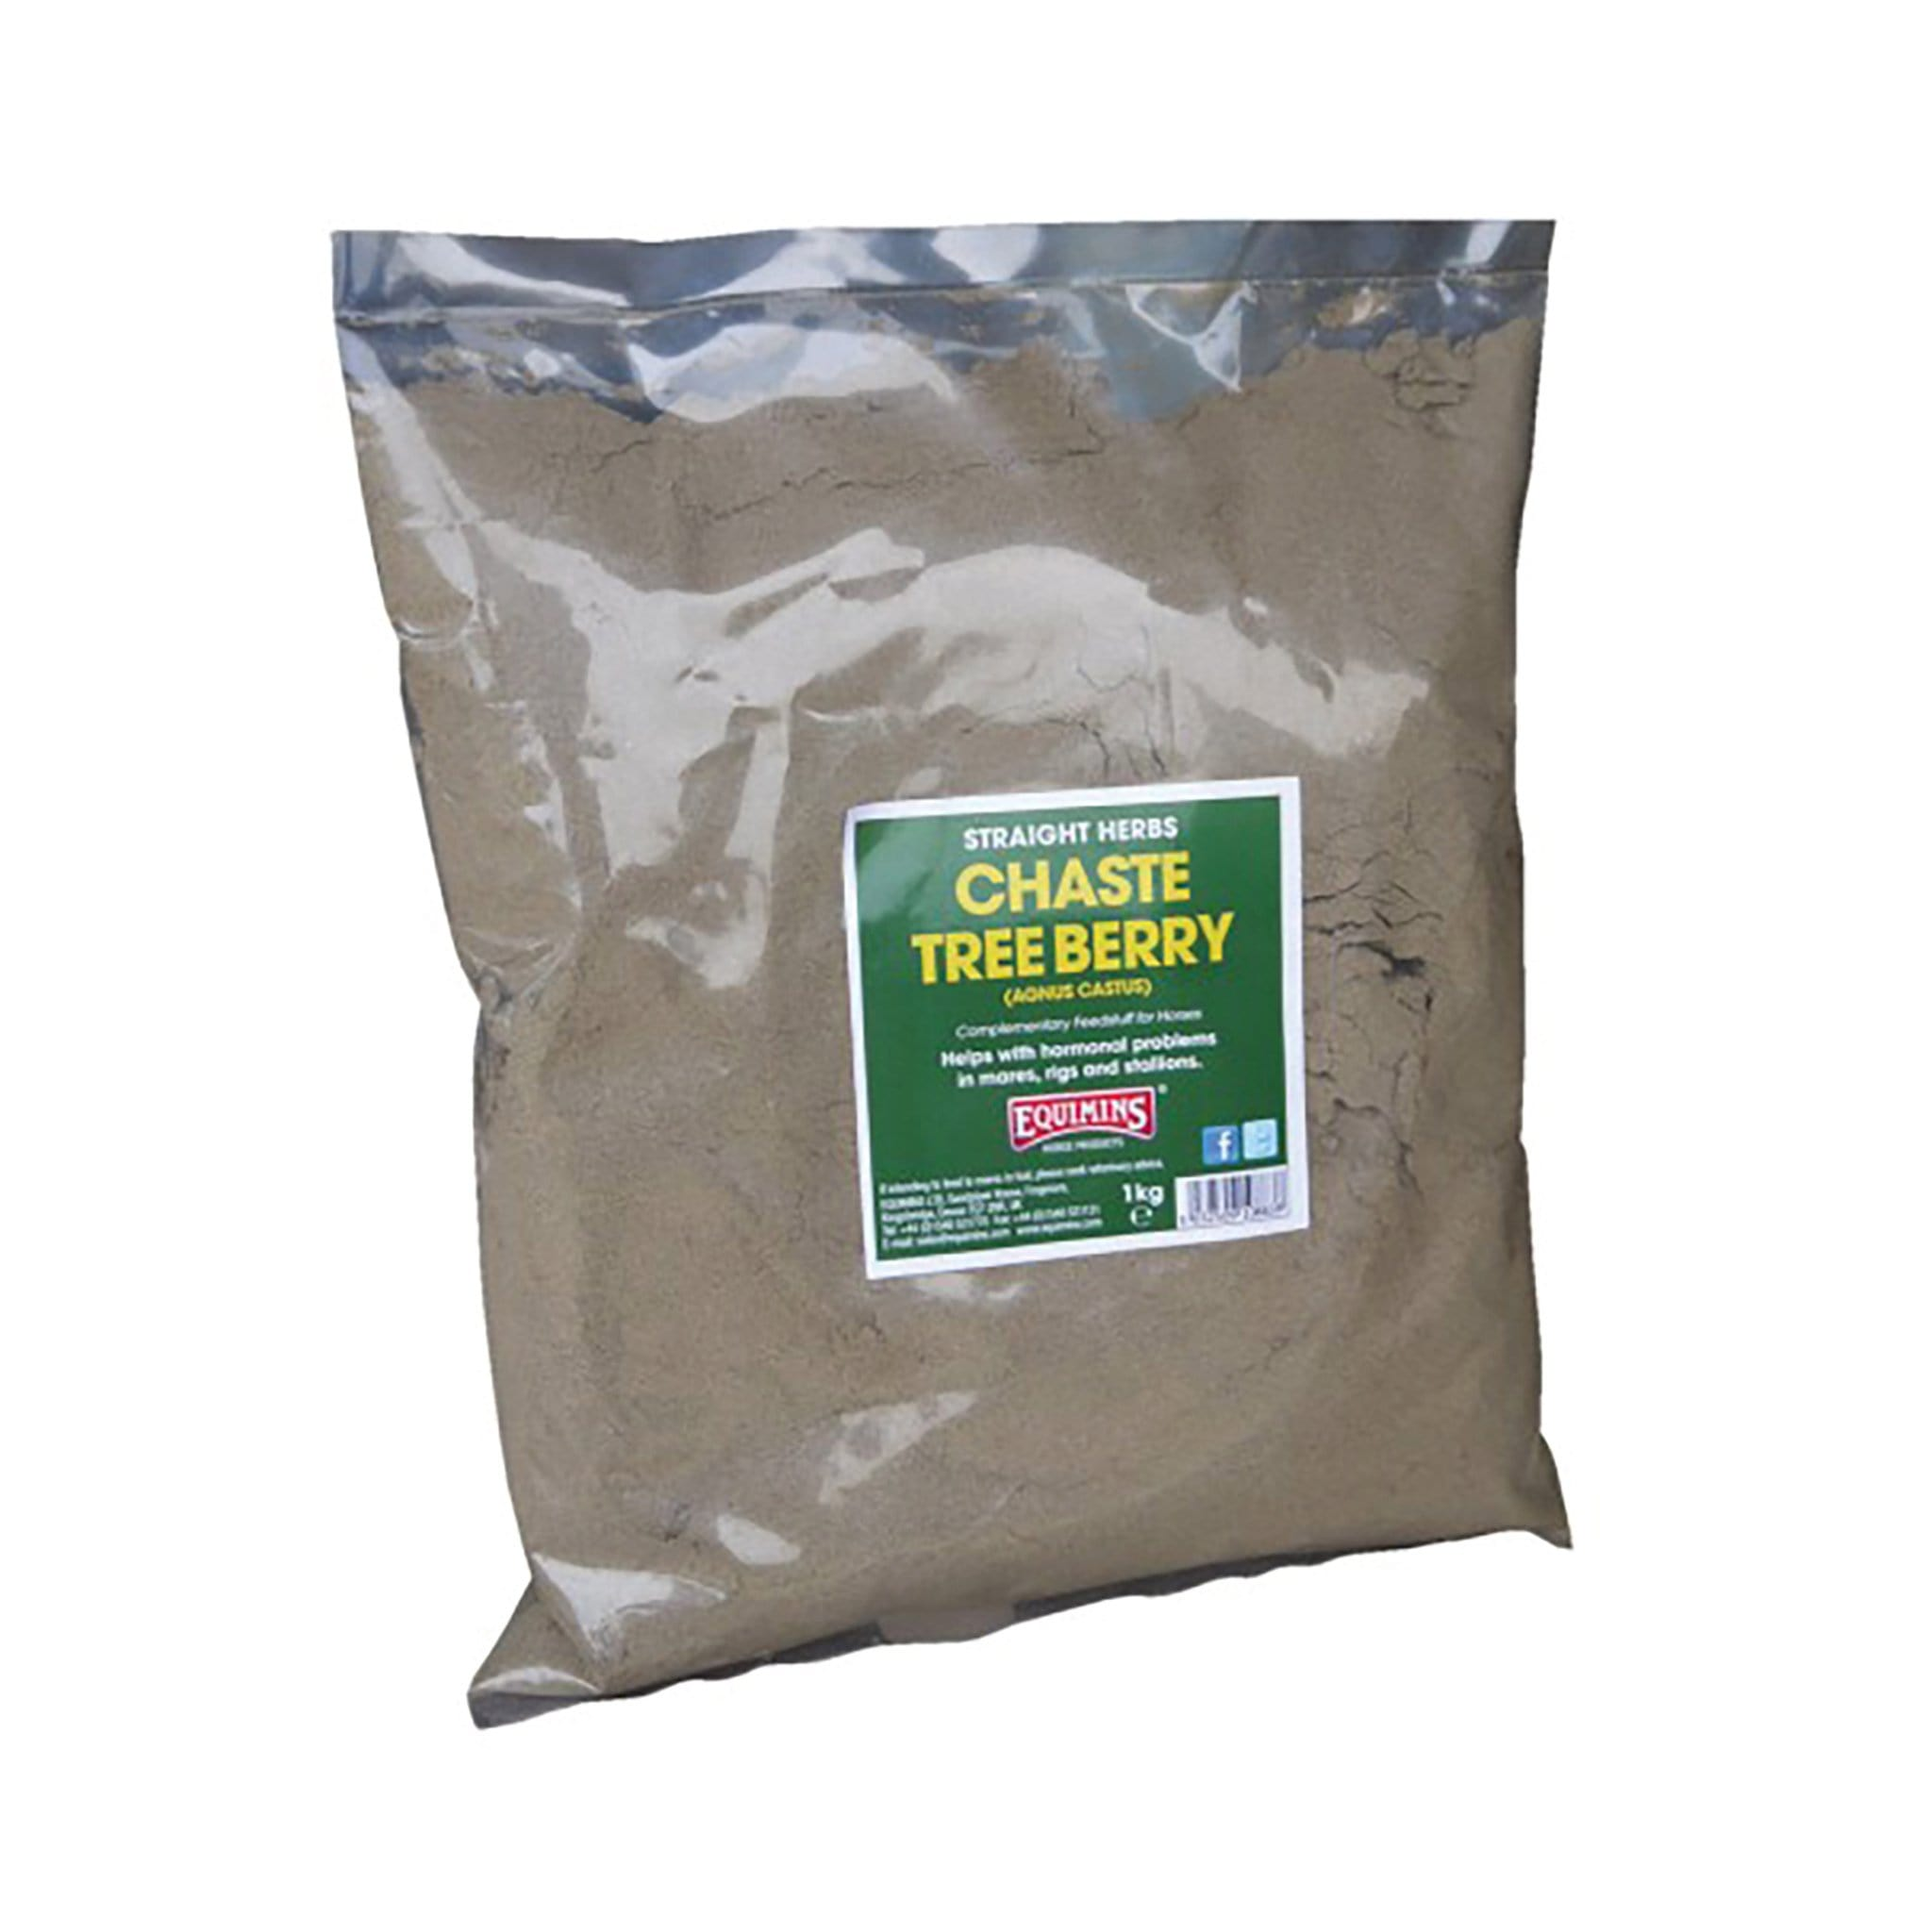 Equimins Straight Herbs Chaste Tree Berry 1KG EQS1315